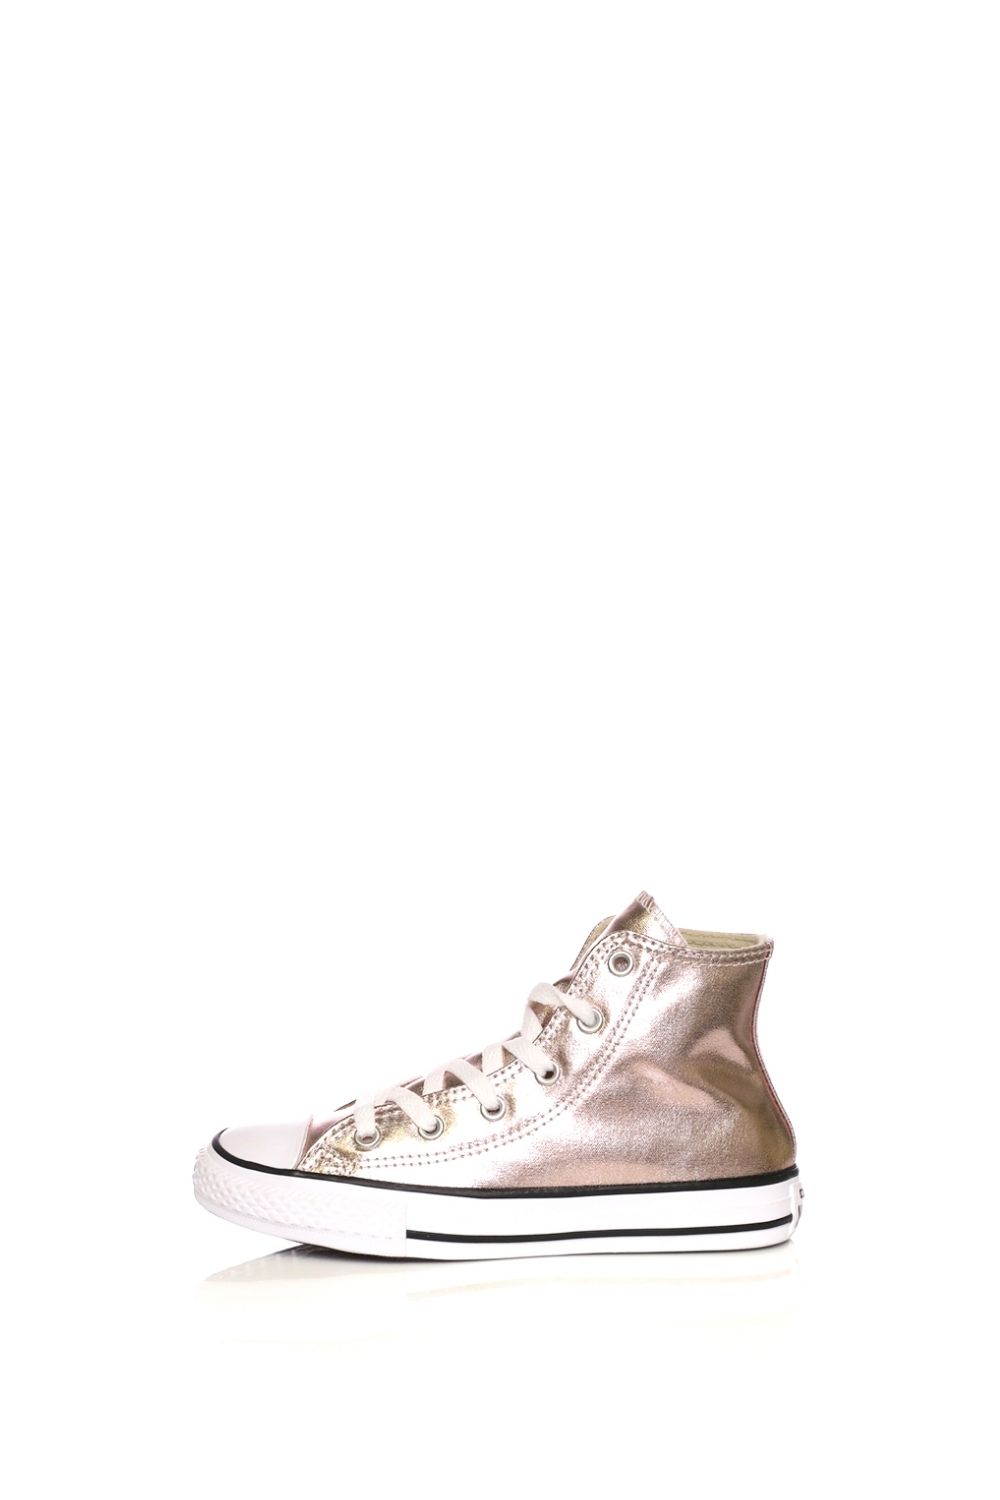 -30% Collective Online CONVERSE – Κοριτσίστικα παπούτσια CONVERSE Chuck  Taylor All Star Hi ροζ ad586cfd1a0